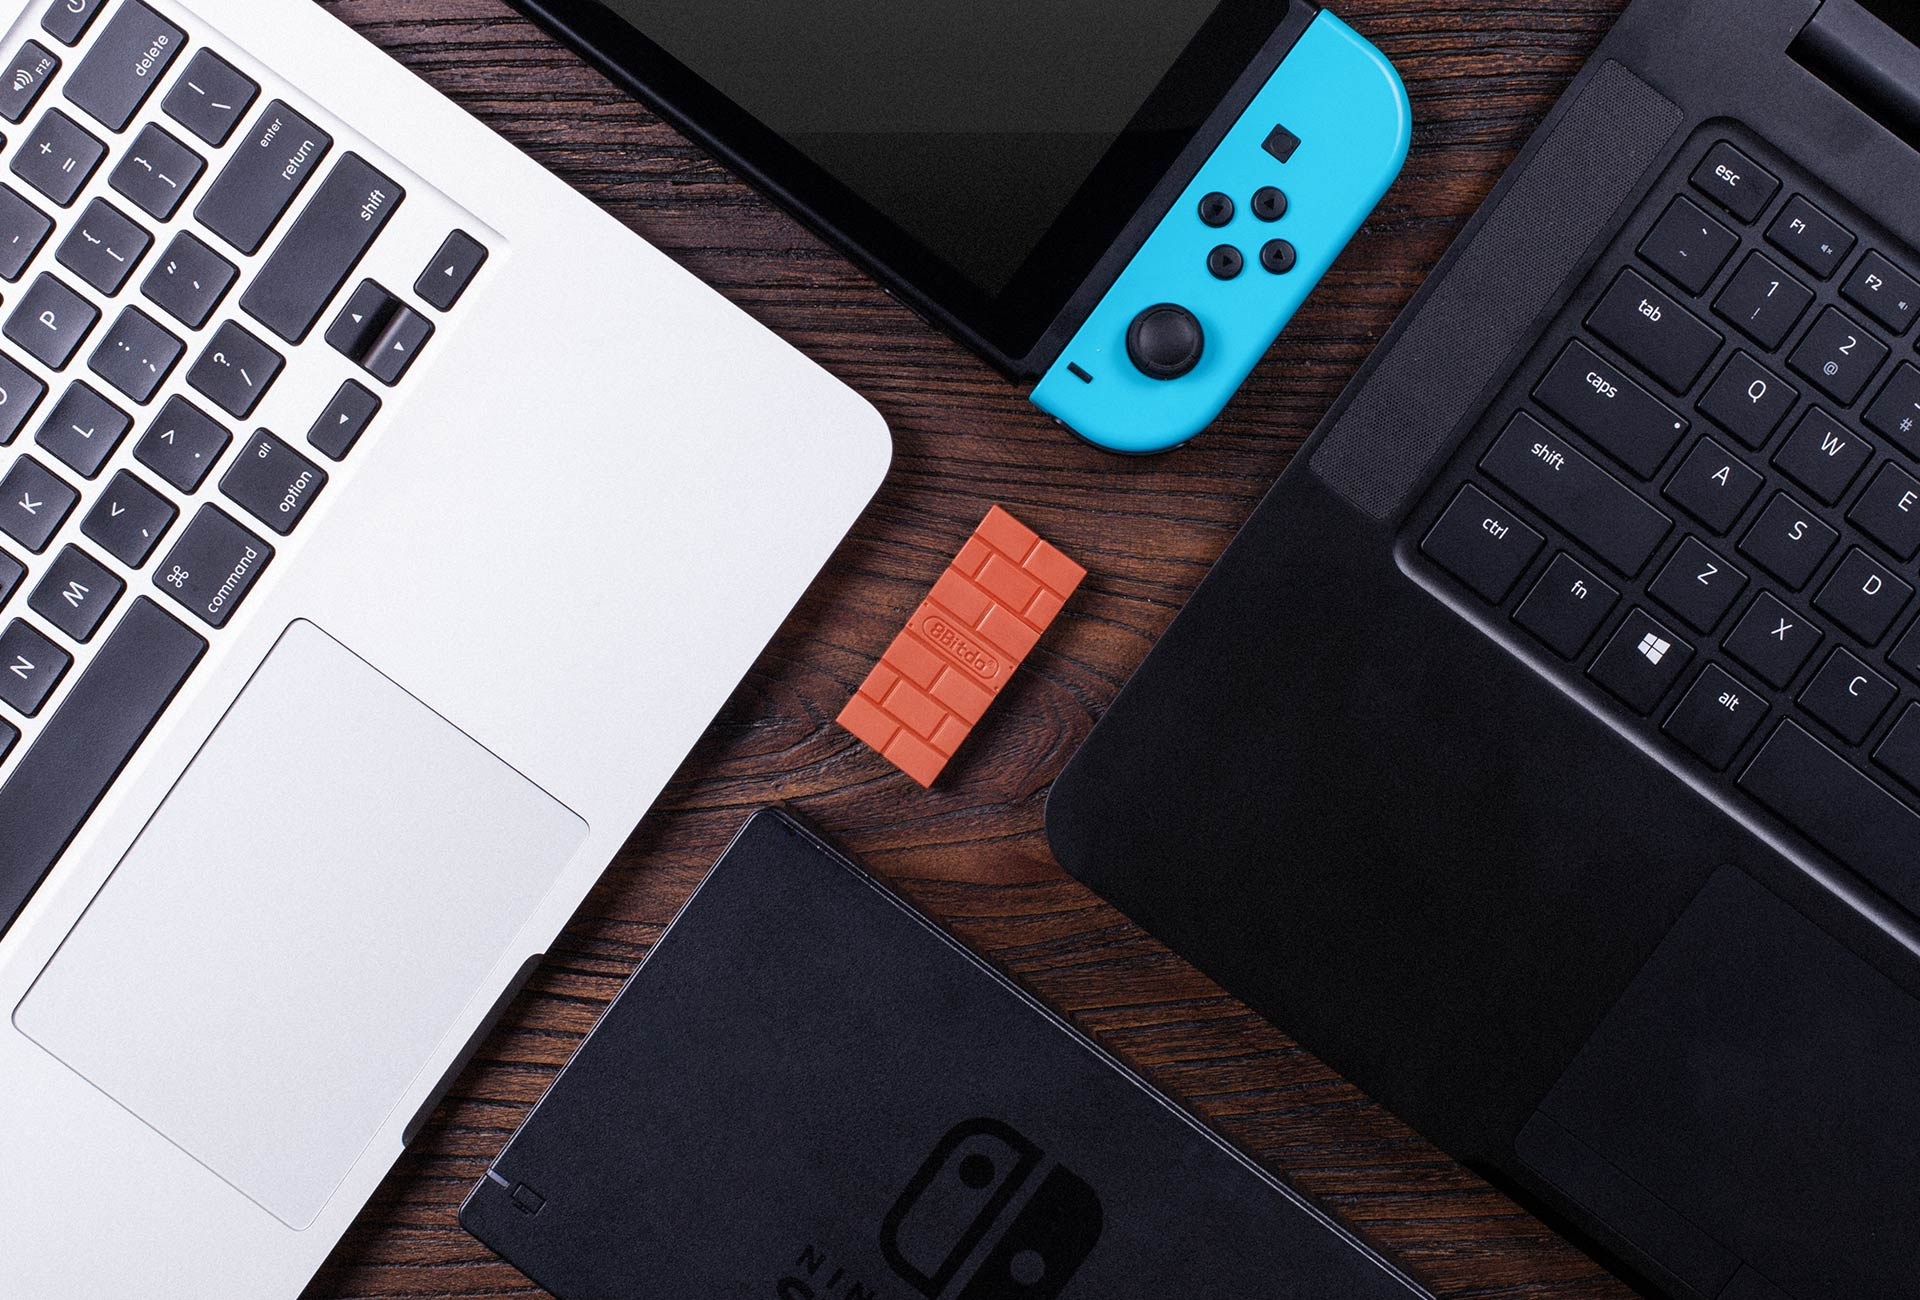 8BitDo Wireless USB Adapter | 8BitDo